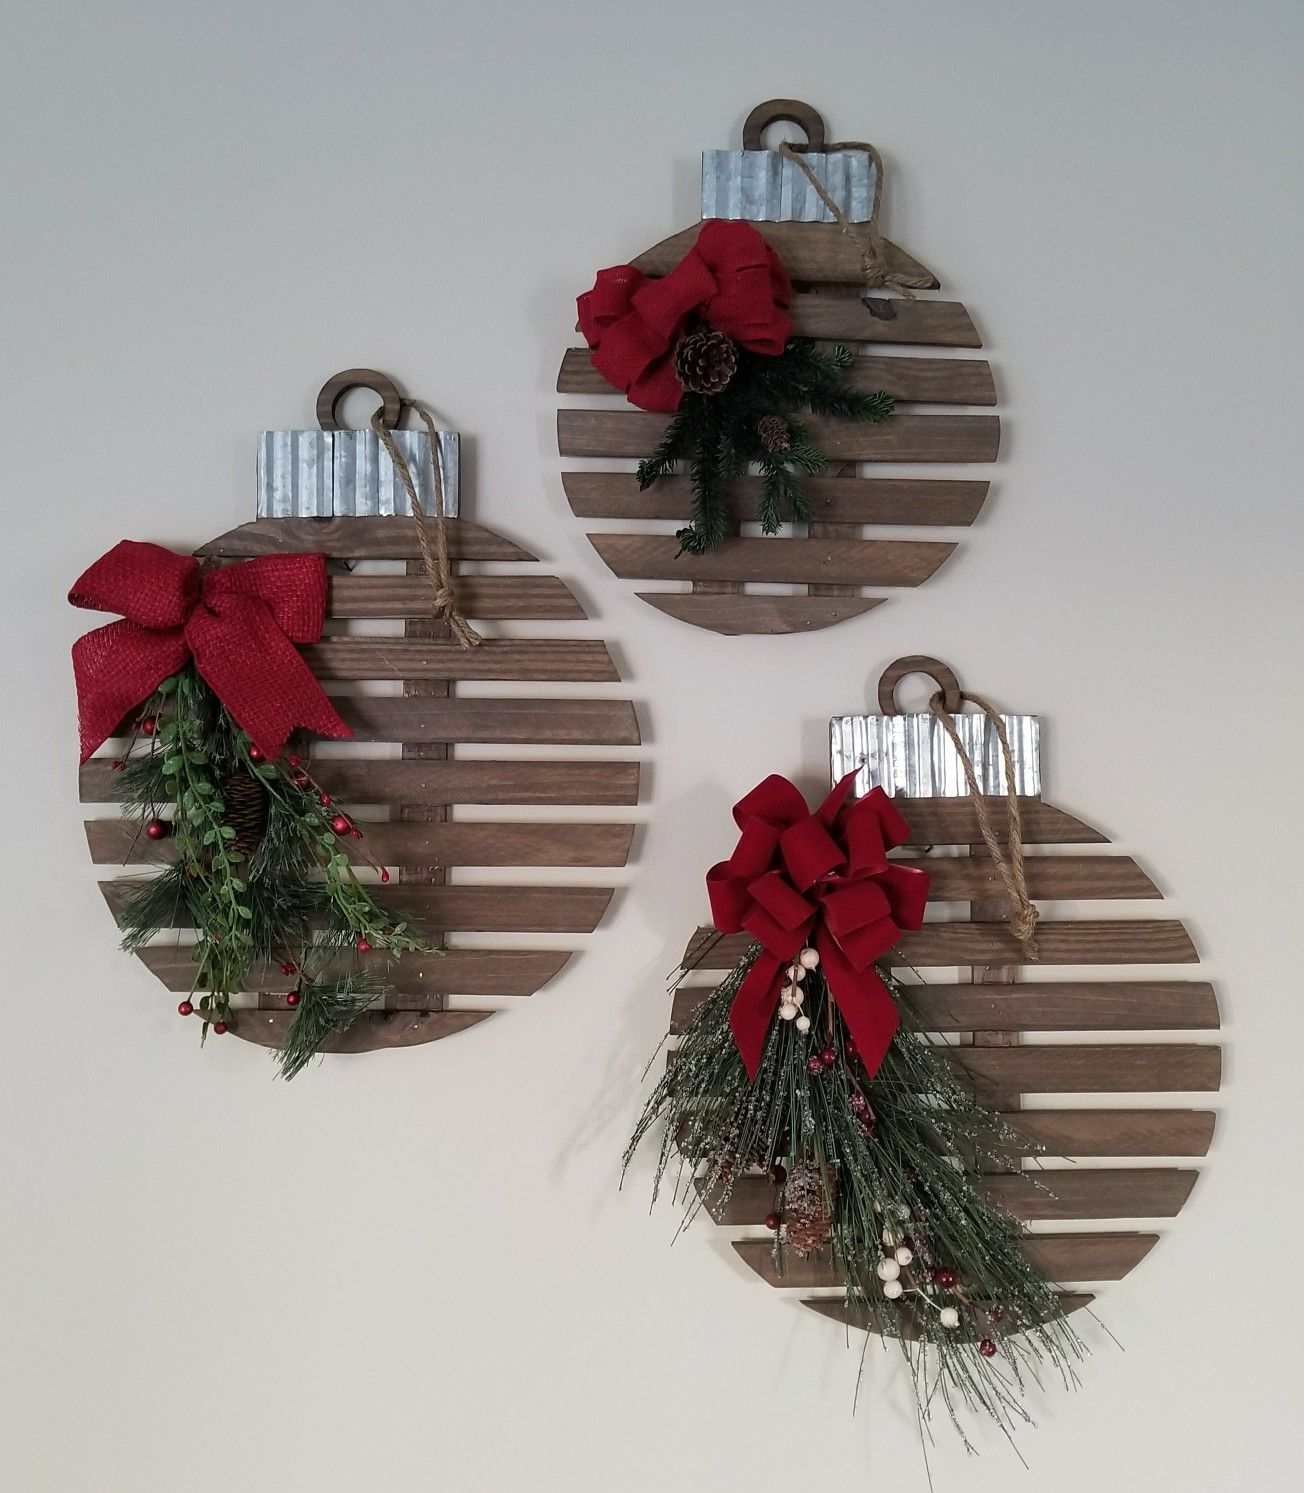 Idee Decoration Noel Exterieur Maison Pin By Brenda Dickson On Holiday Christmas Things Pinterest